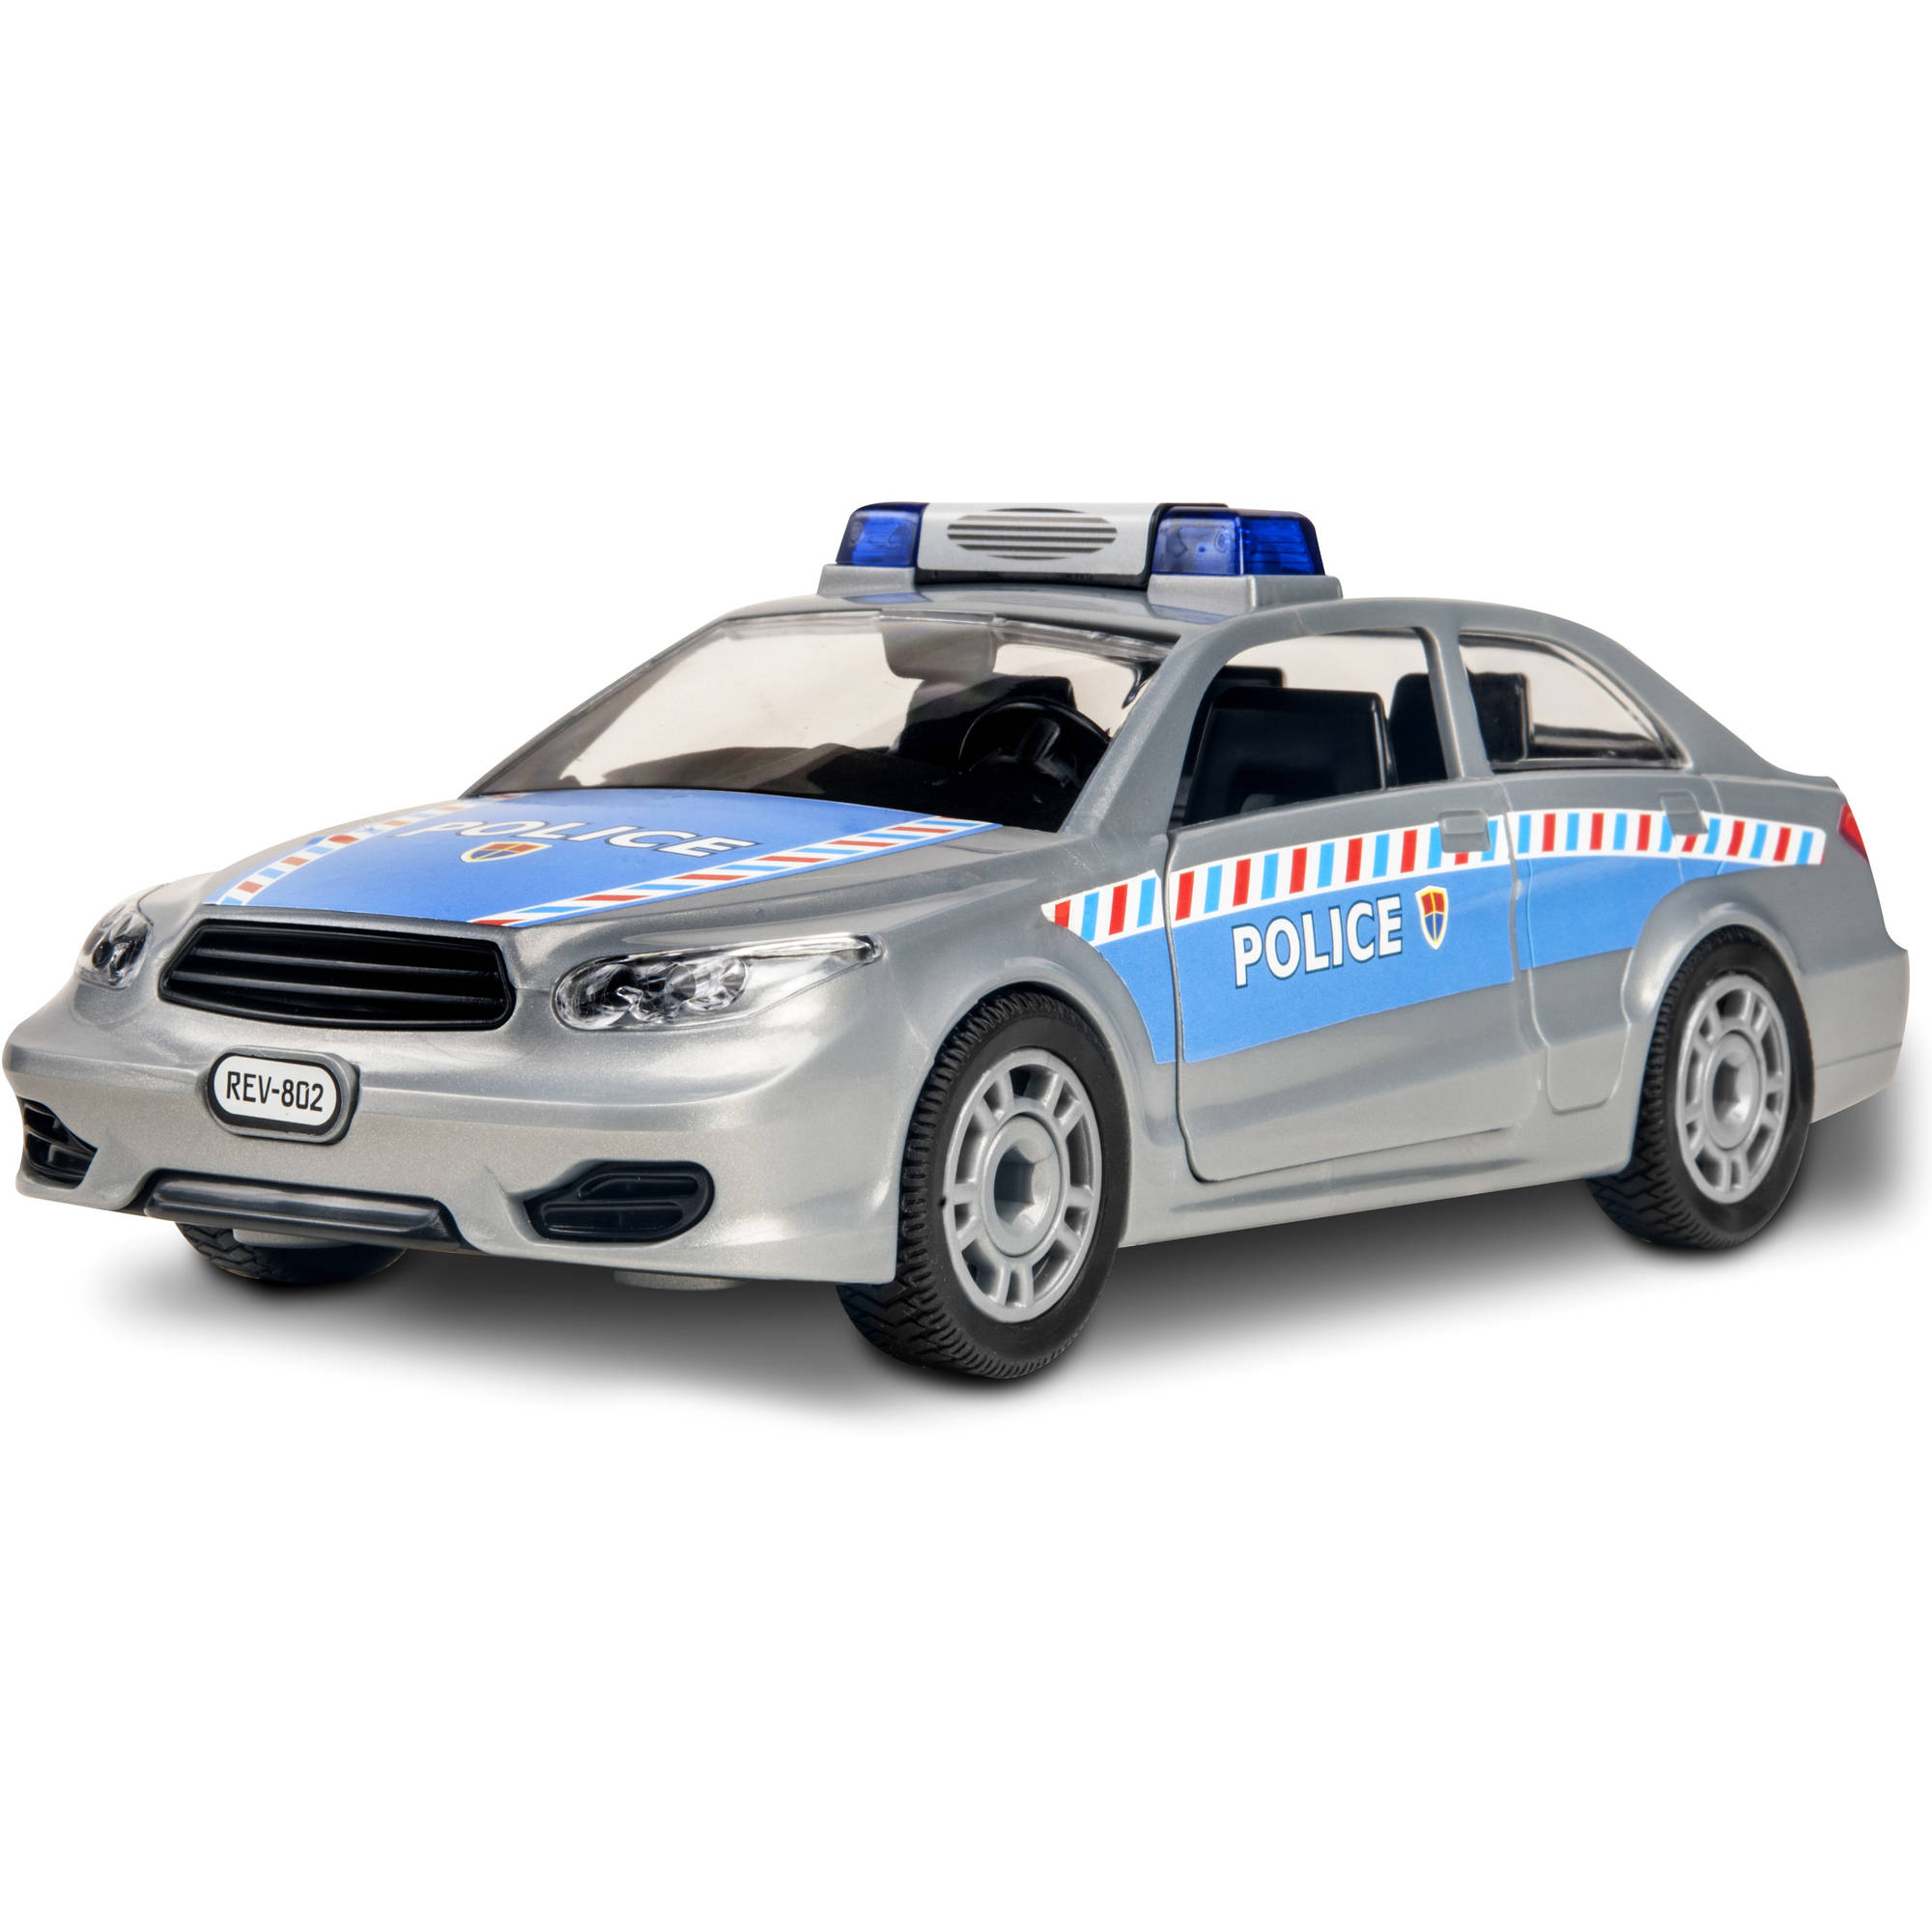 Revell Junior Kit Police Car Plastic Model Kit